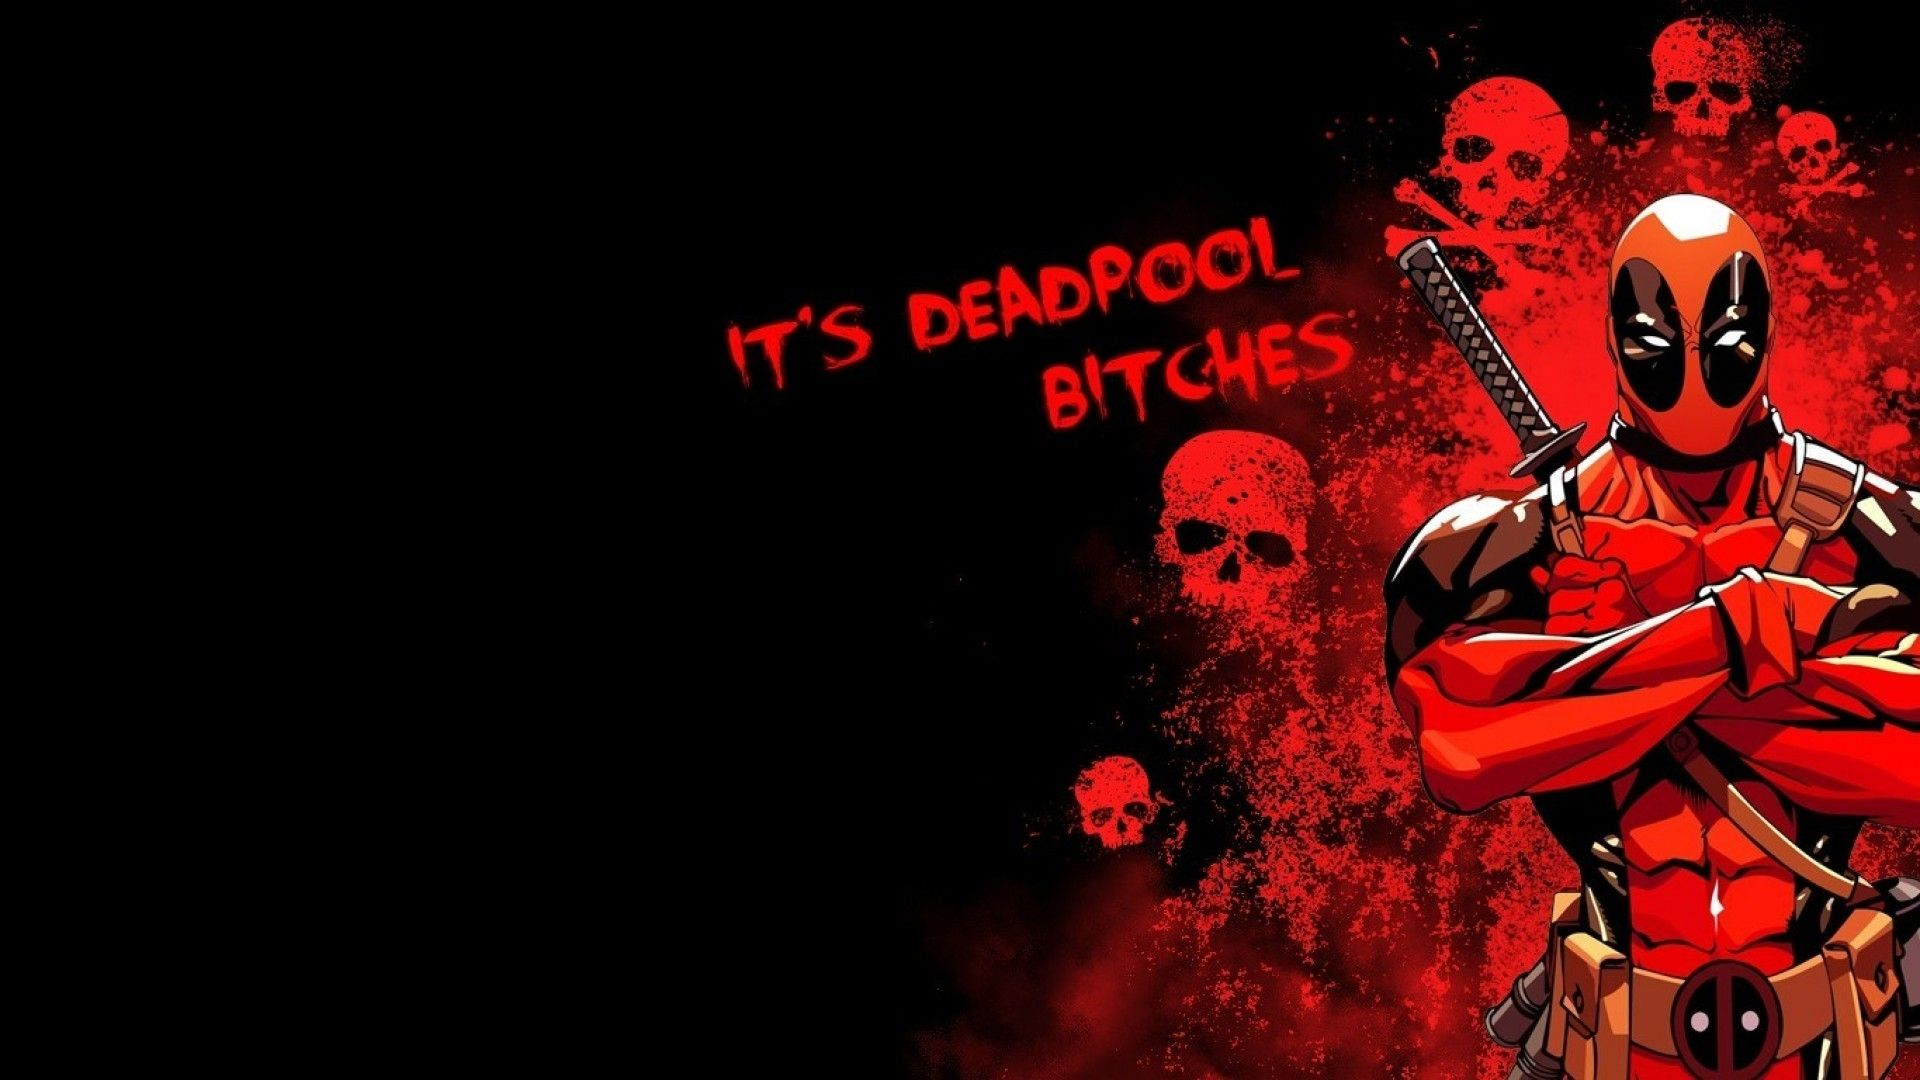 10 top deadpool wallpaper 1920x1080 hd full hd 1080p for for Deadpool wallpaper 1920x1080